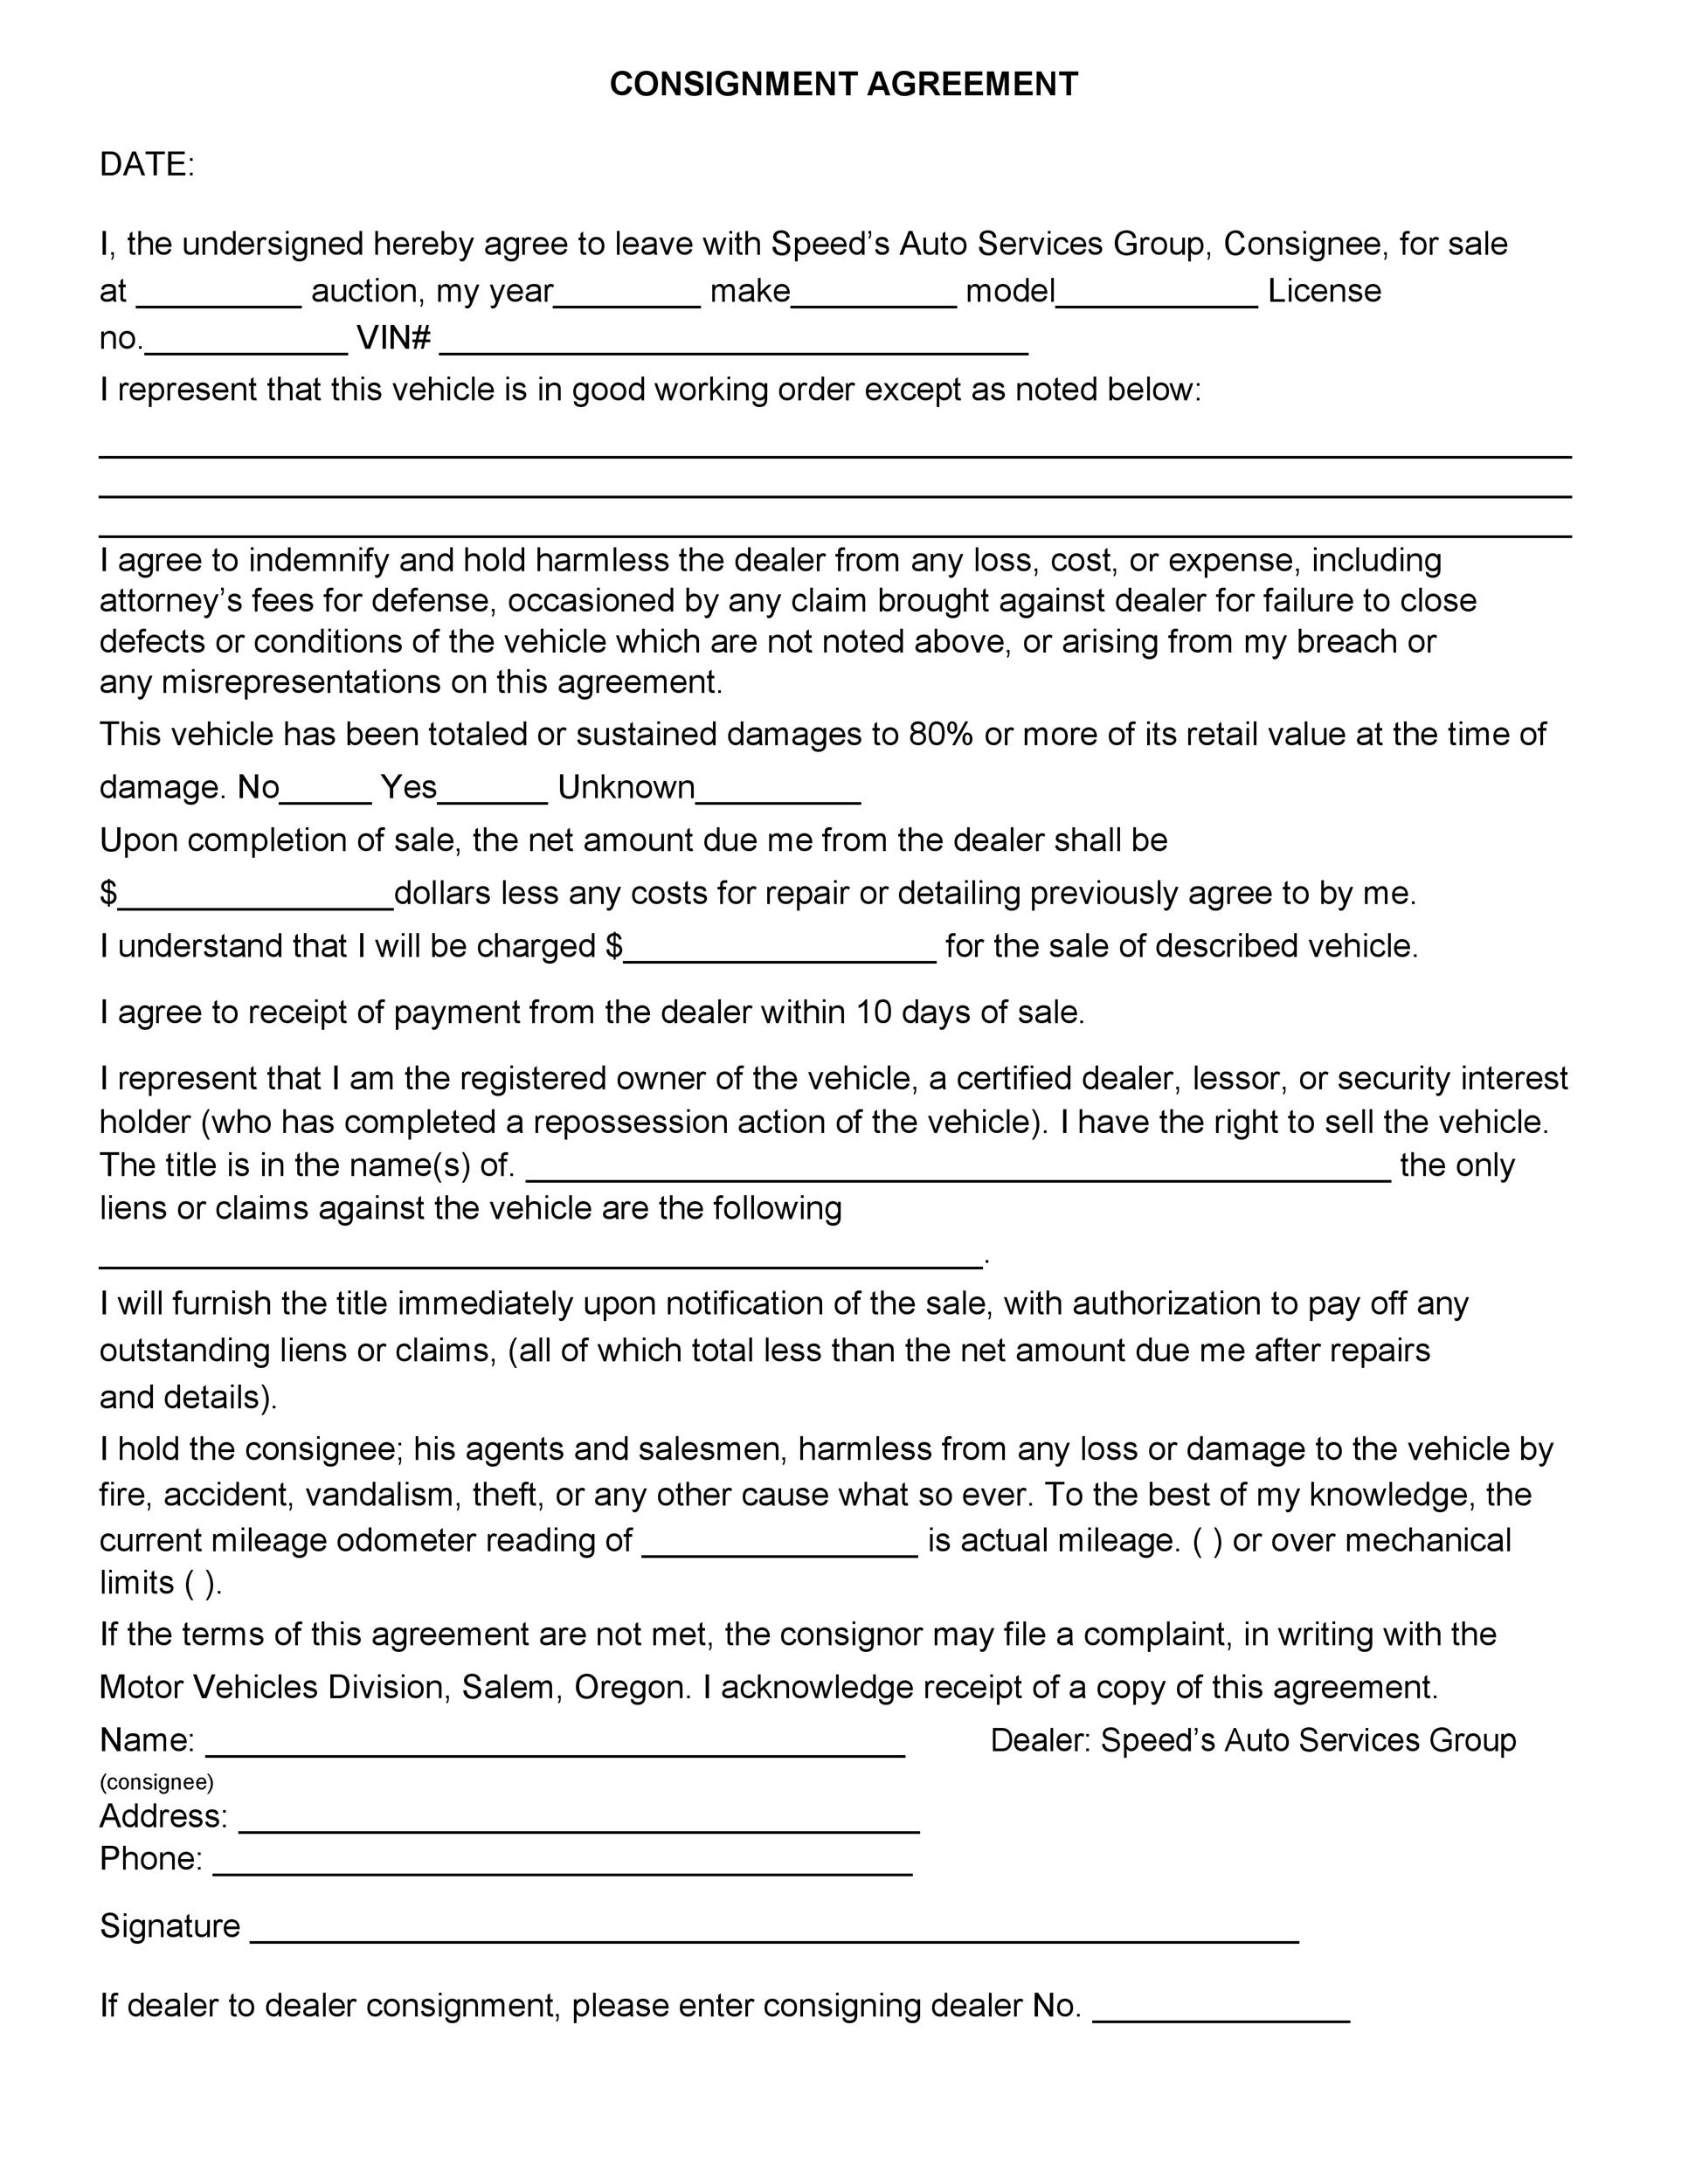 Free Consignment Agreement Template 36